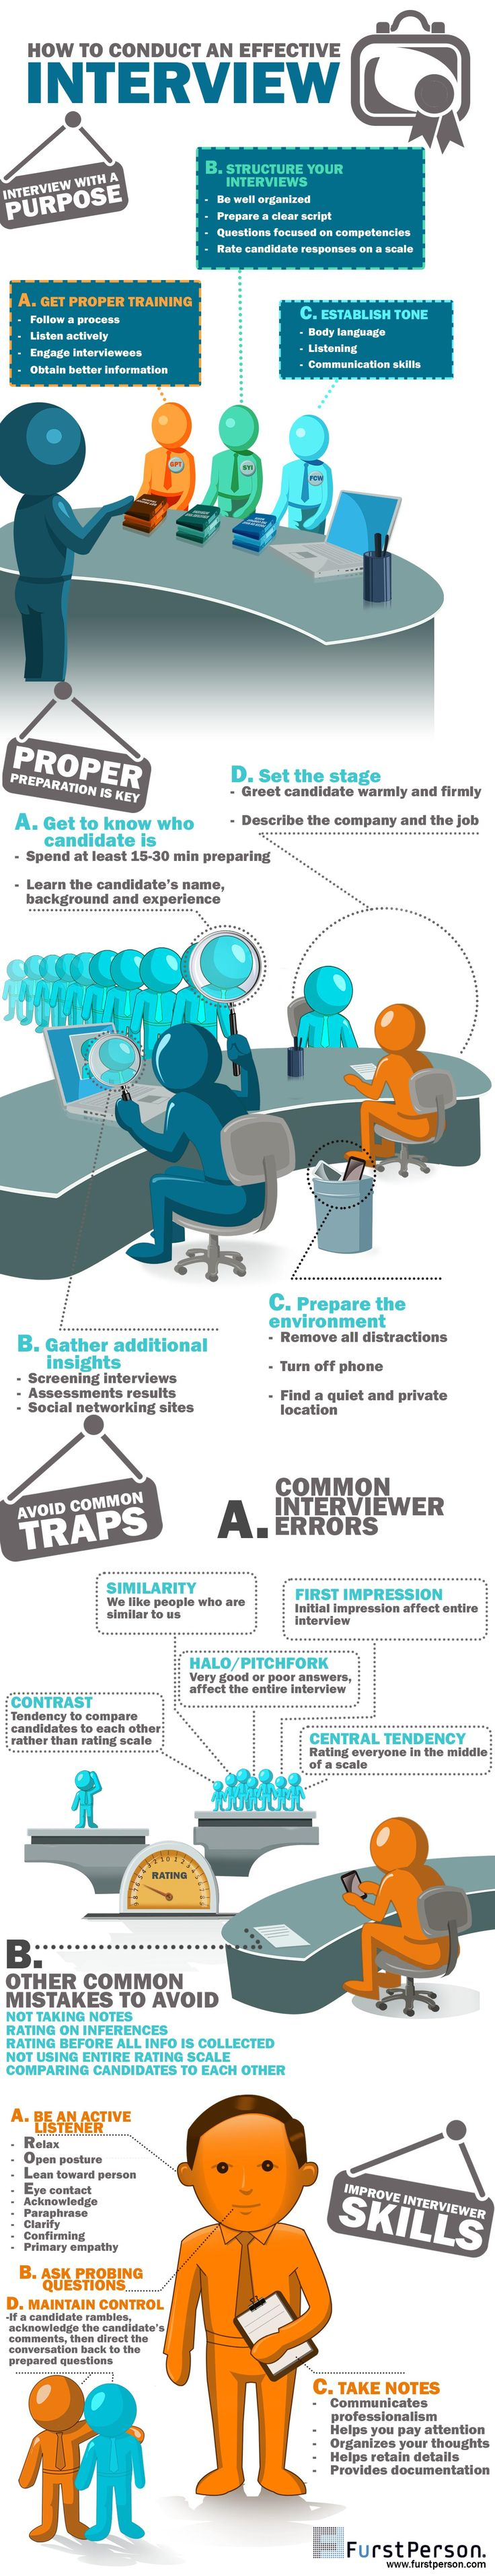 This infographic is made to show how to conduct an effective interview. There are three main things employer should remember before he conduct intervi